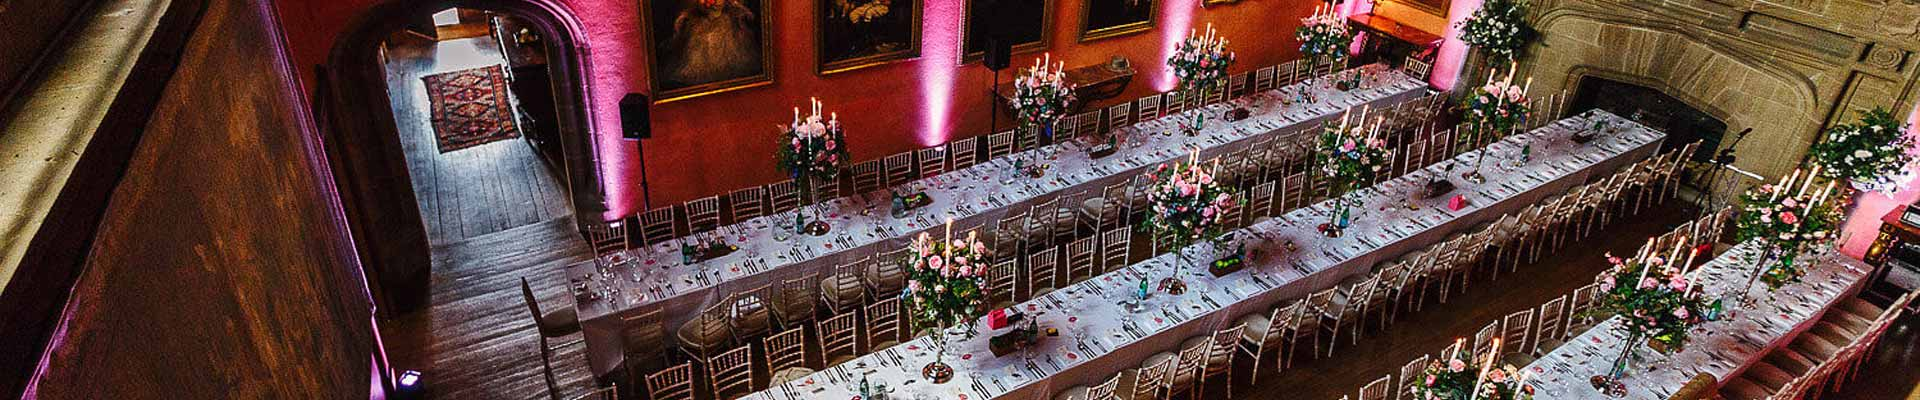 Image of Cowdray House set for dinner